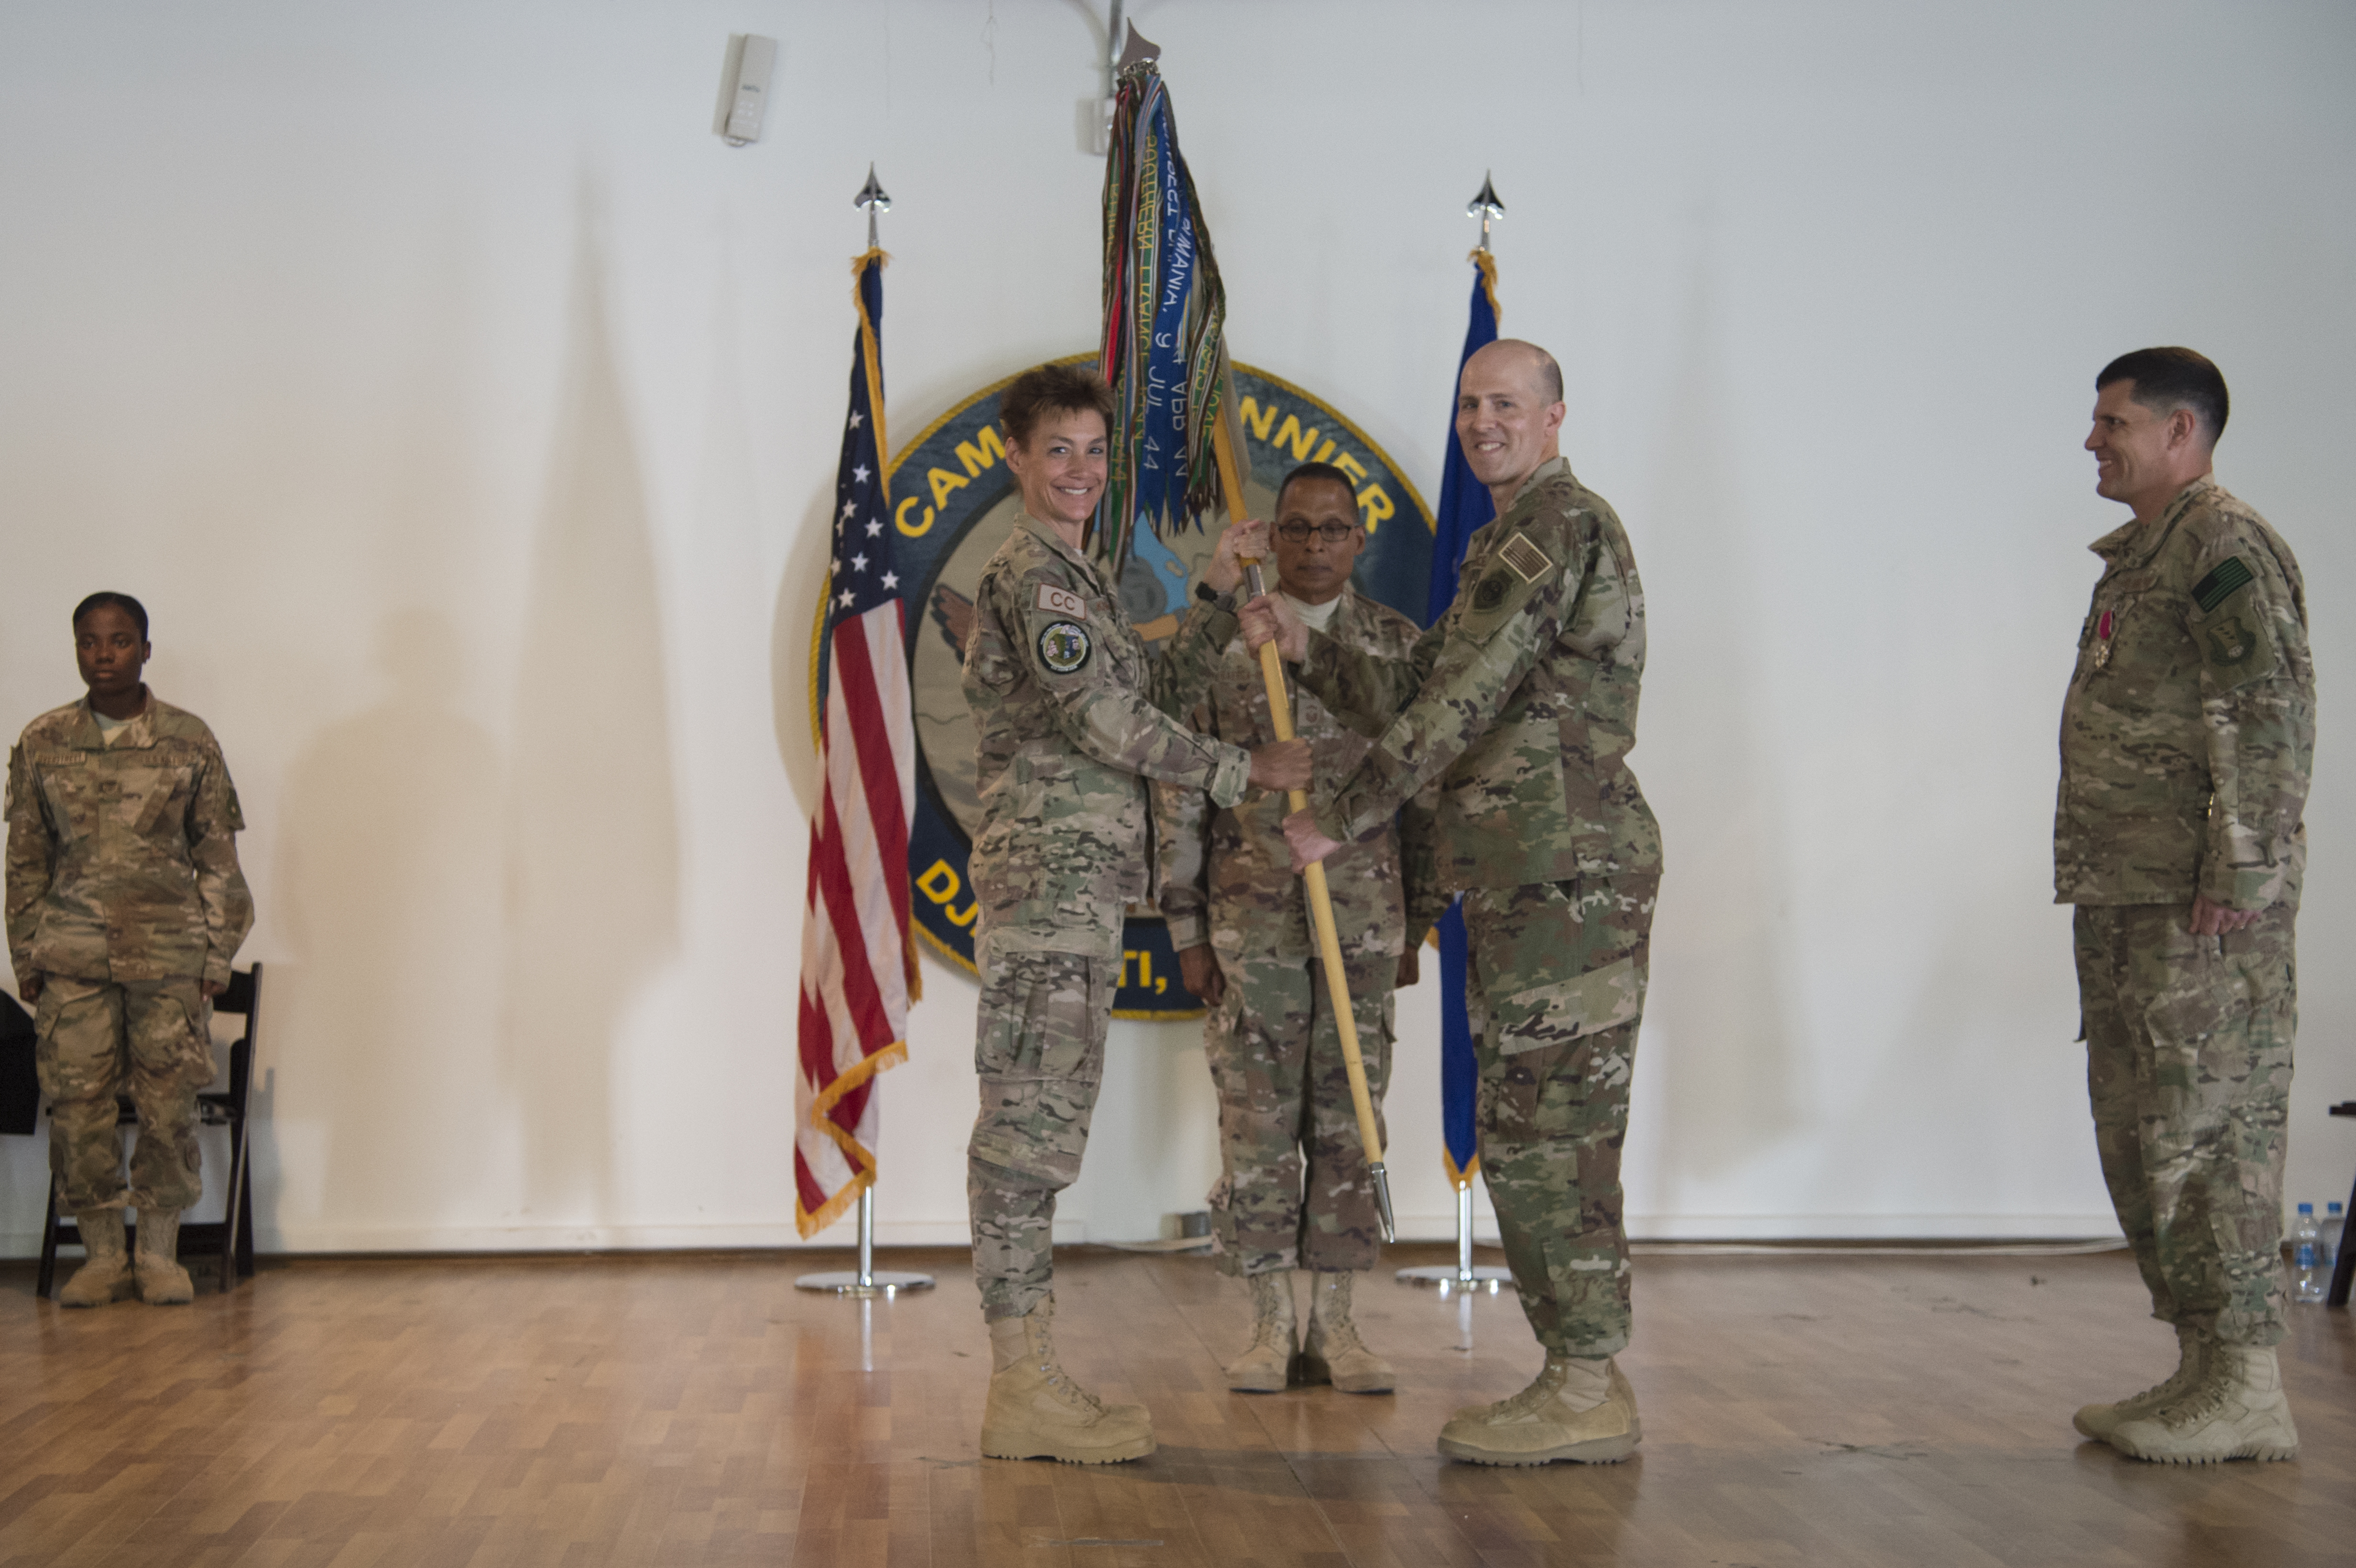 U.S. Air Force Col. Shawn Cochran, 449th Air Expeditionary Group incoming commander, receives the 449th AEG flag from U.S. Air Force Col. Andra Kniep, 435th Air Expeditionary Wing commander, during the 449th AEG Change of Command ceremony June 9, 2017, at Camp Lemonnier, Djibouti. Cochran is relieving U.S. Air Force Col. Michael Bruzzini who has served as the 449th AEG Commander since June 6, 2016. The passing of the flag is a military tradition signifying the change of authority and responsibility of a unit from one commander to another. (U.S. Air National Guard Photo by Tech. Sgt. Joe Harwood)